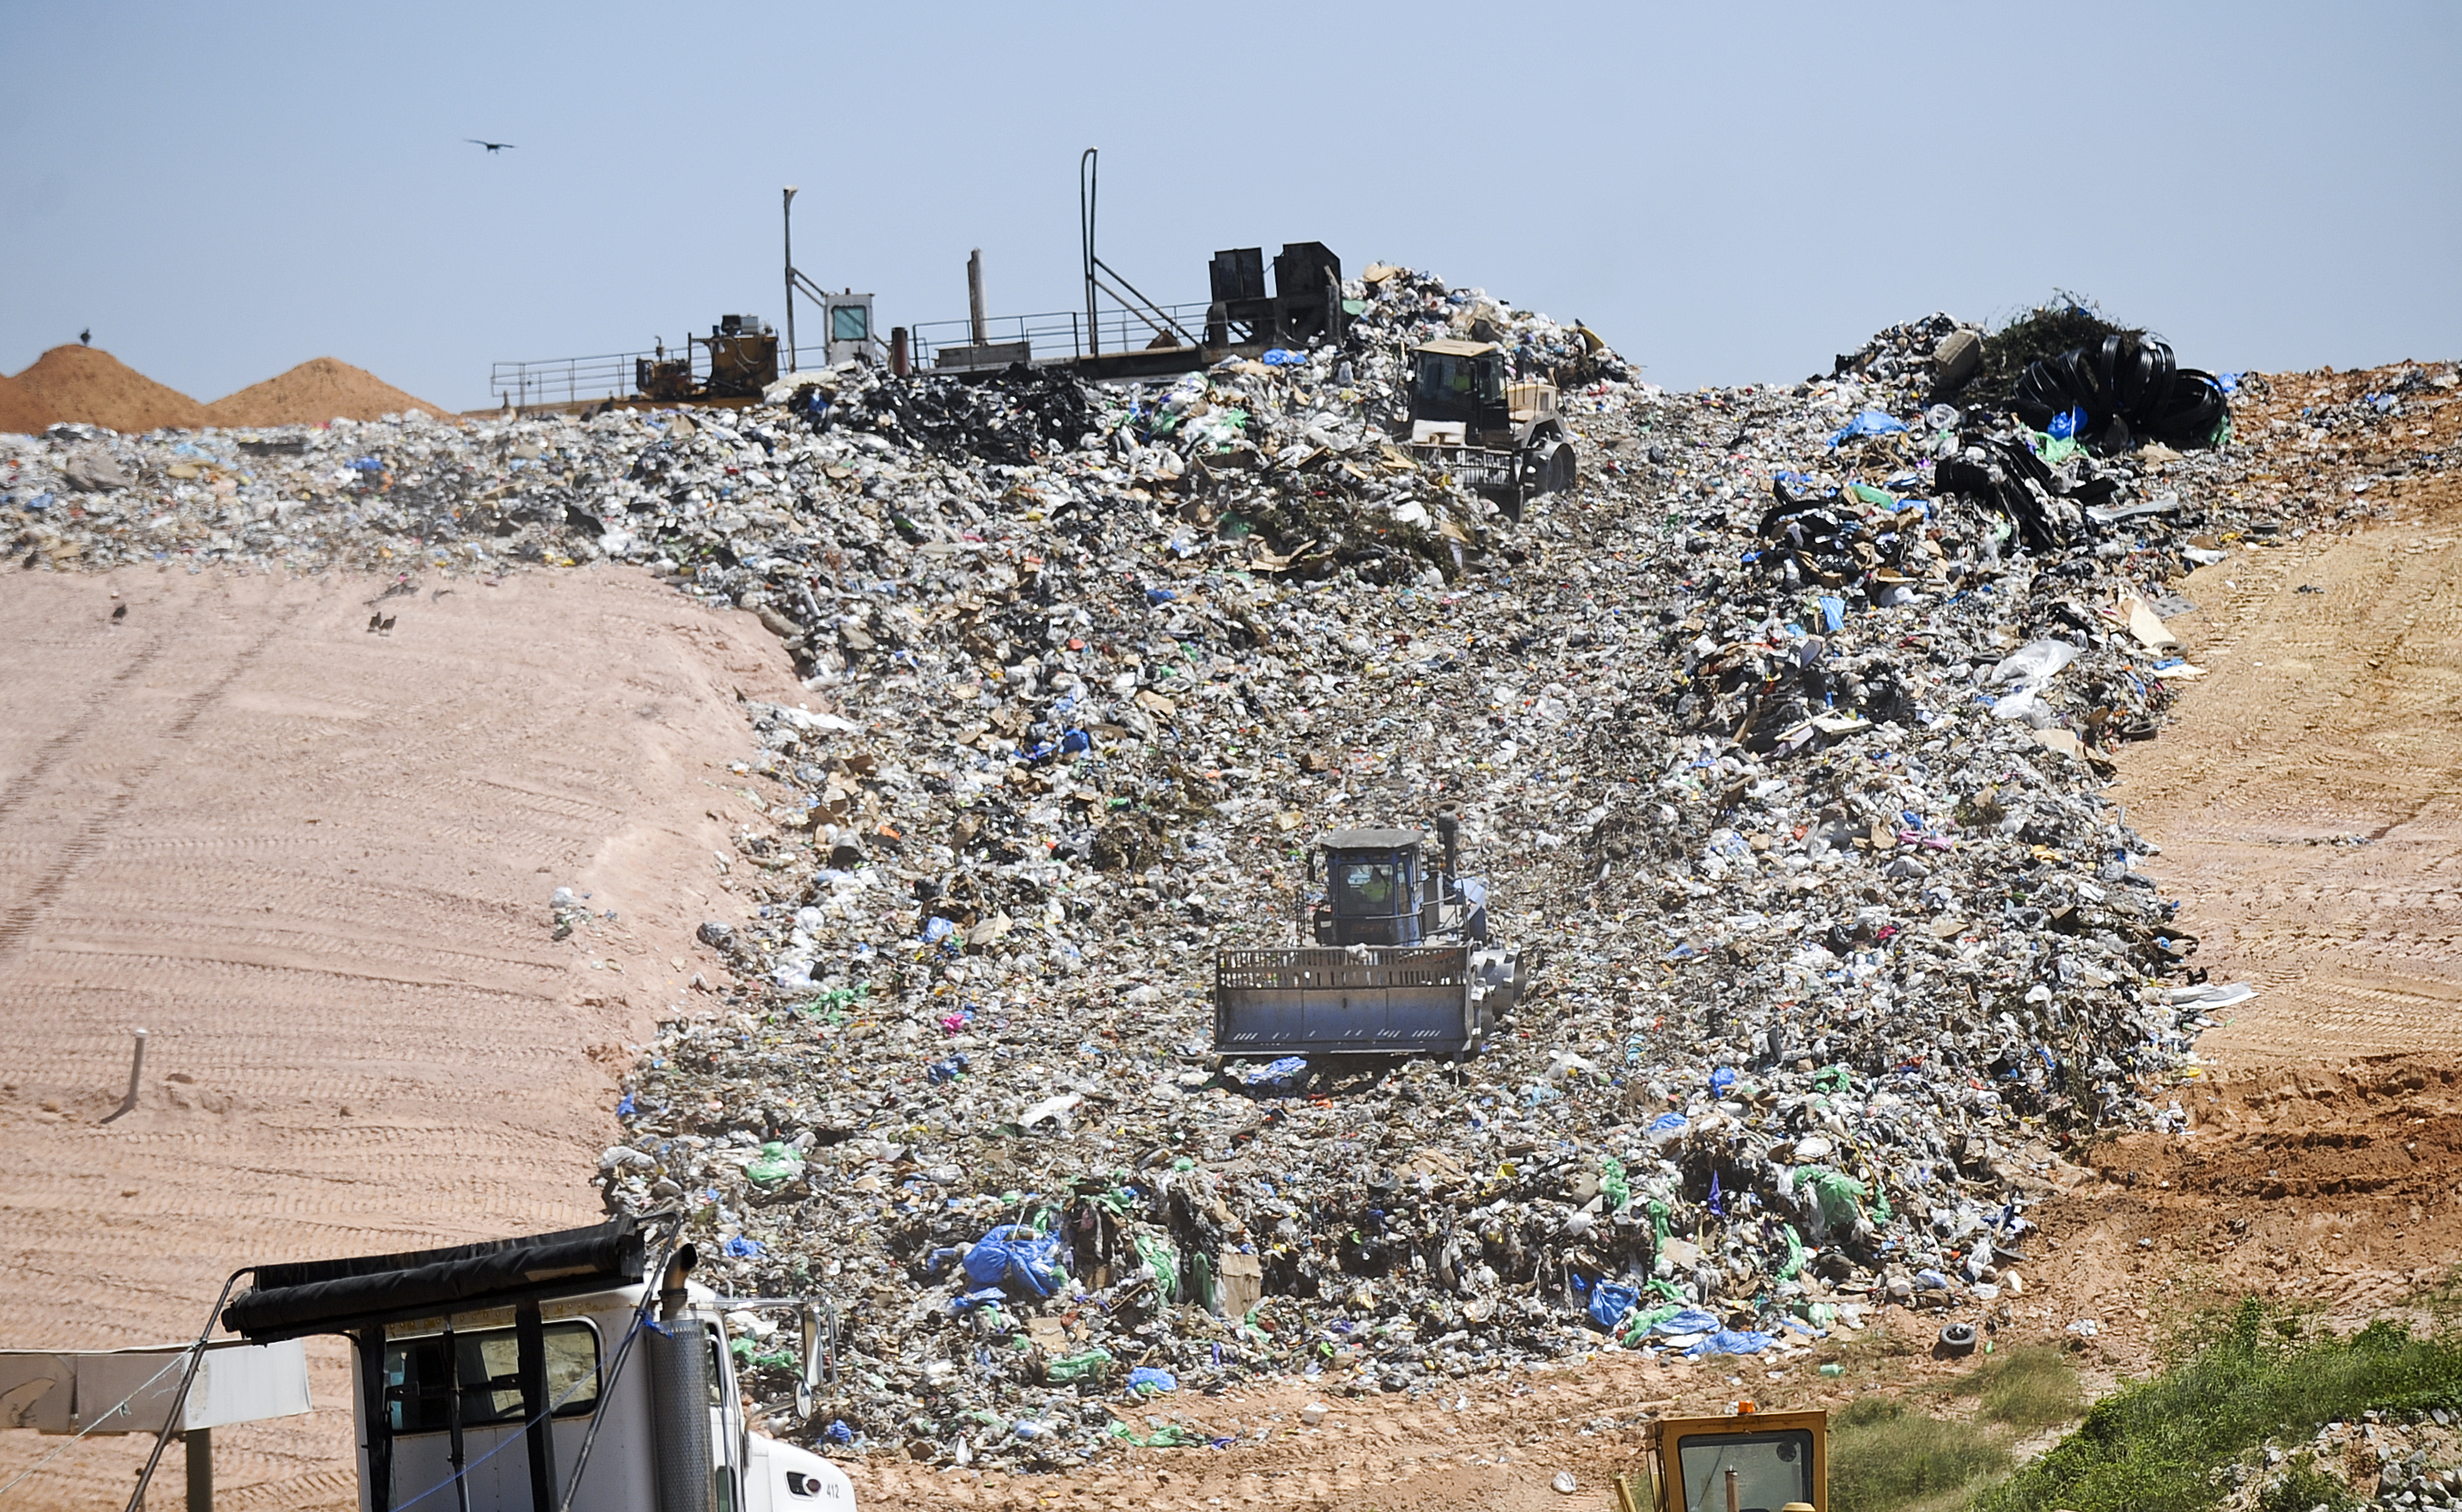 Stone's Throw Landfill